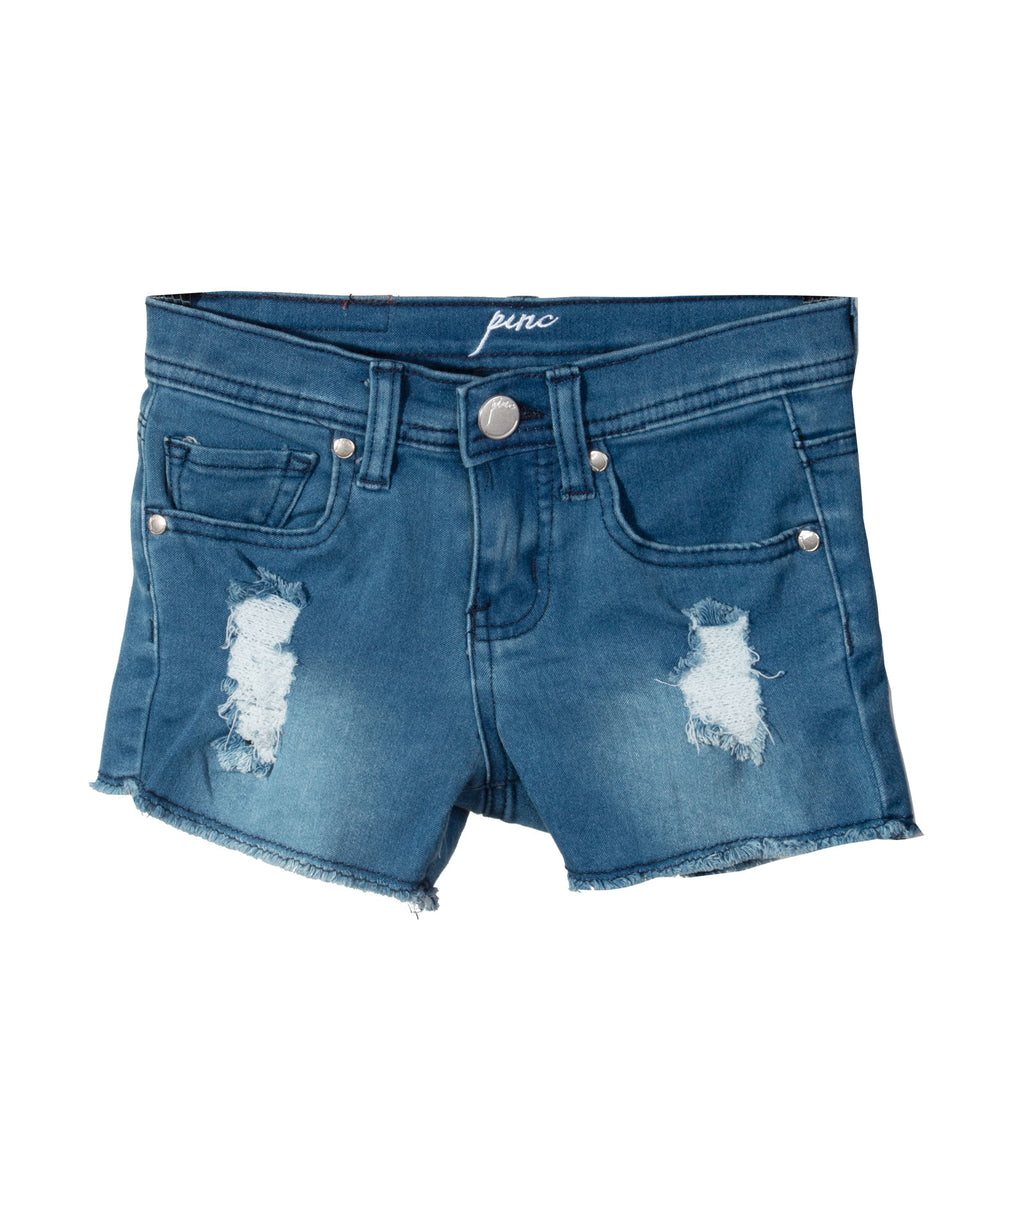 Pinc Premium Denim Shorts Rips Med Wash